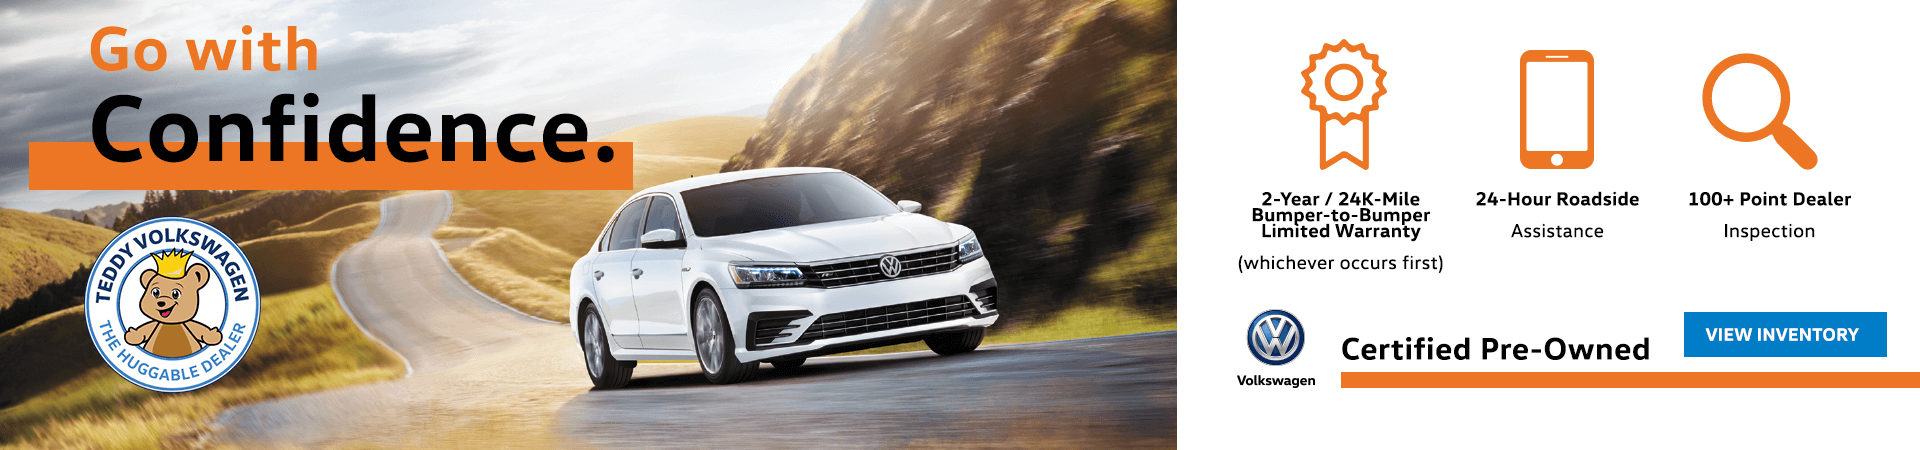 Go With Confidence - Certified Pre-Owned Volkswagen Vehicles Bronx